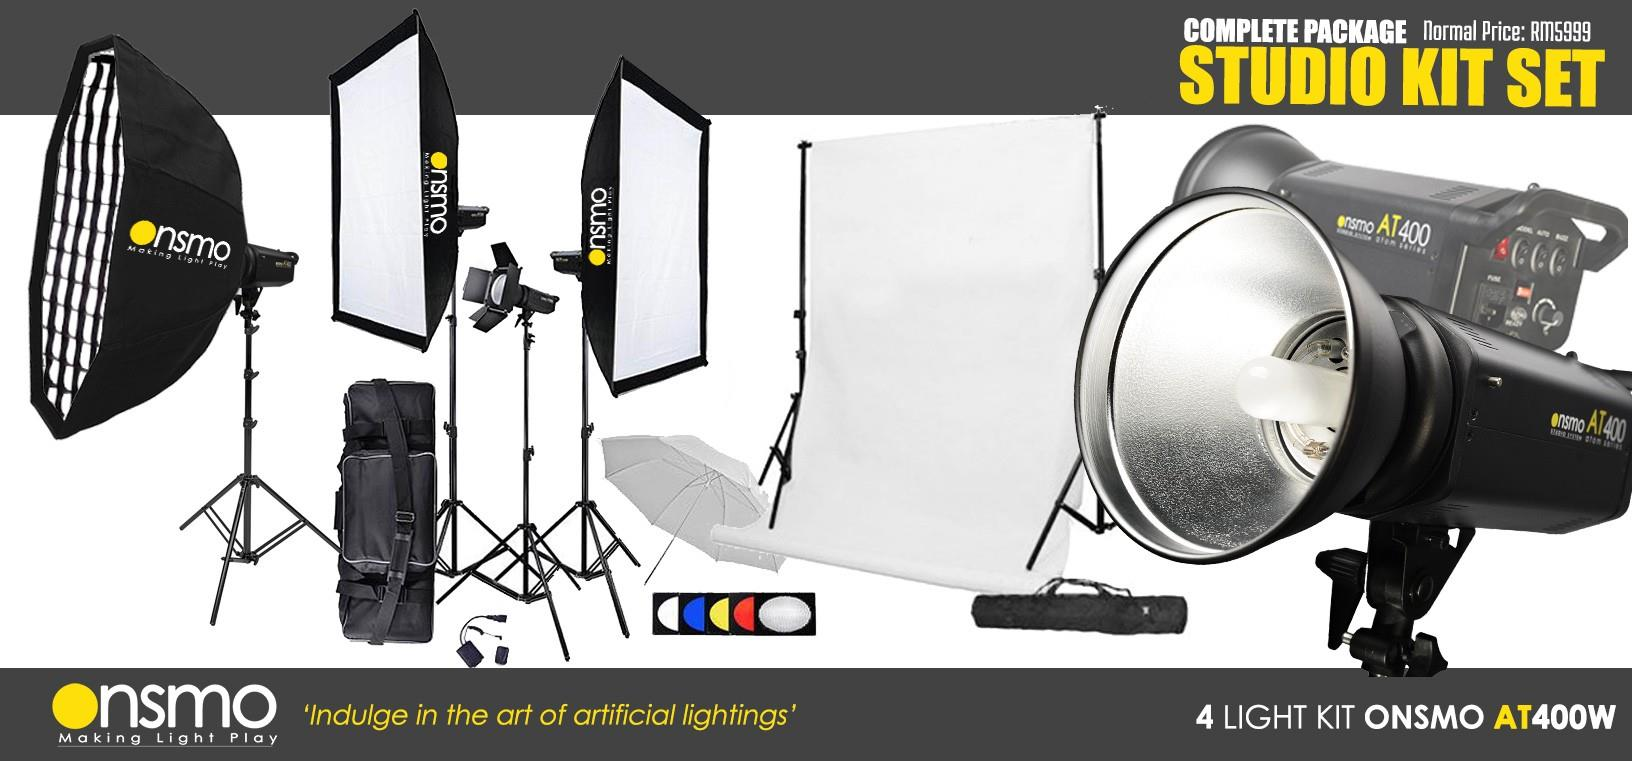 am studio lighting. Semi Pro Studio Setup Package (Onsmo AT400W X 4 Lights Kit) Am Lighting I